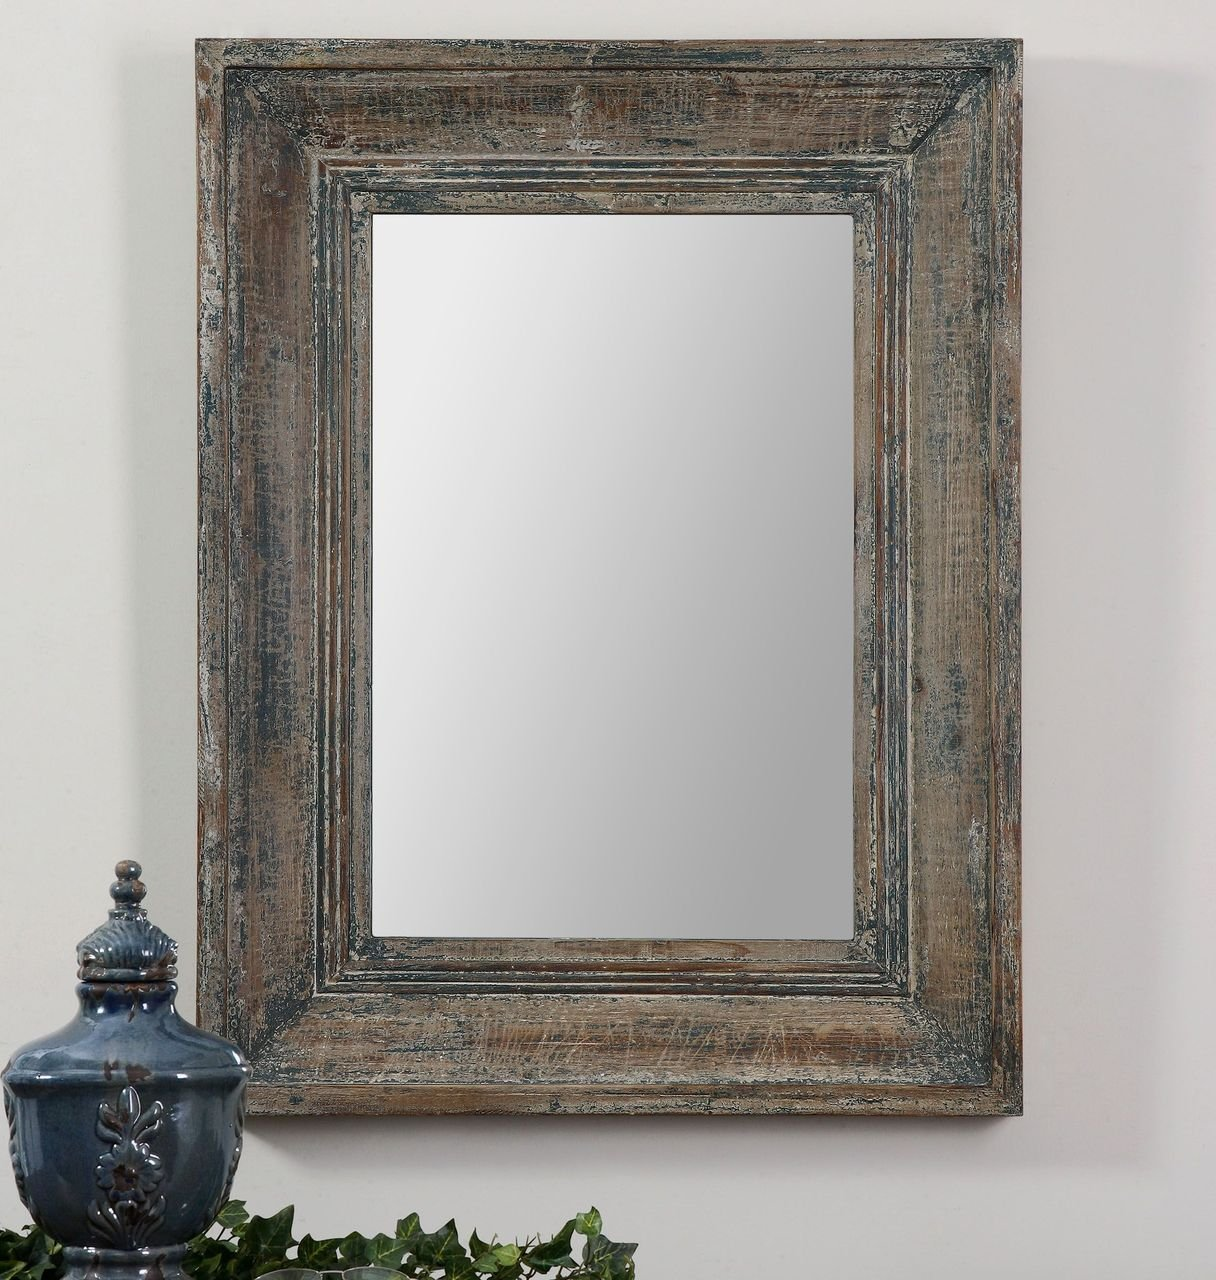 Amazon.com: Aged Teal Blue Green Wall Mirror | Wood Cottage Vanity  Distressed: Home & Kitchen - Amazon.com: Aged Teal Blue Green Wall Mirror Wood Cottage Vanity